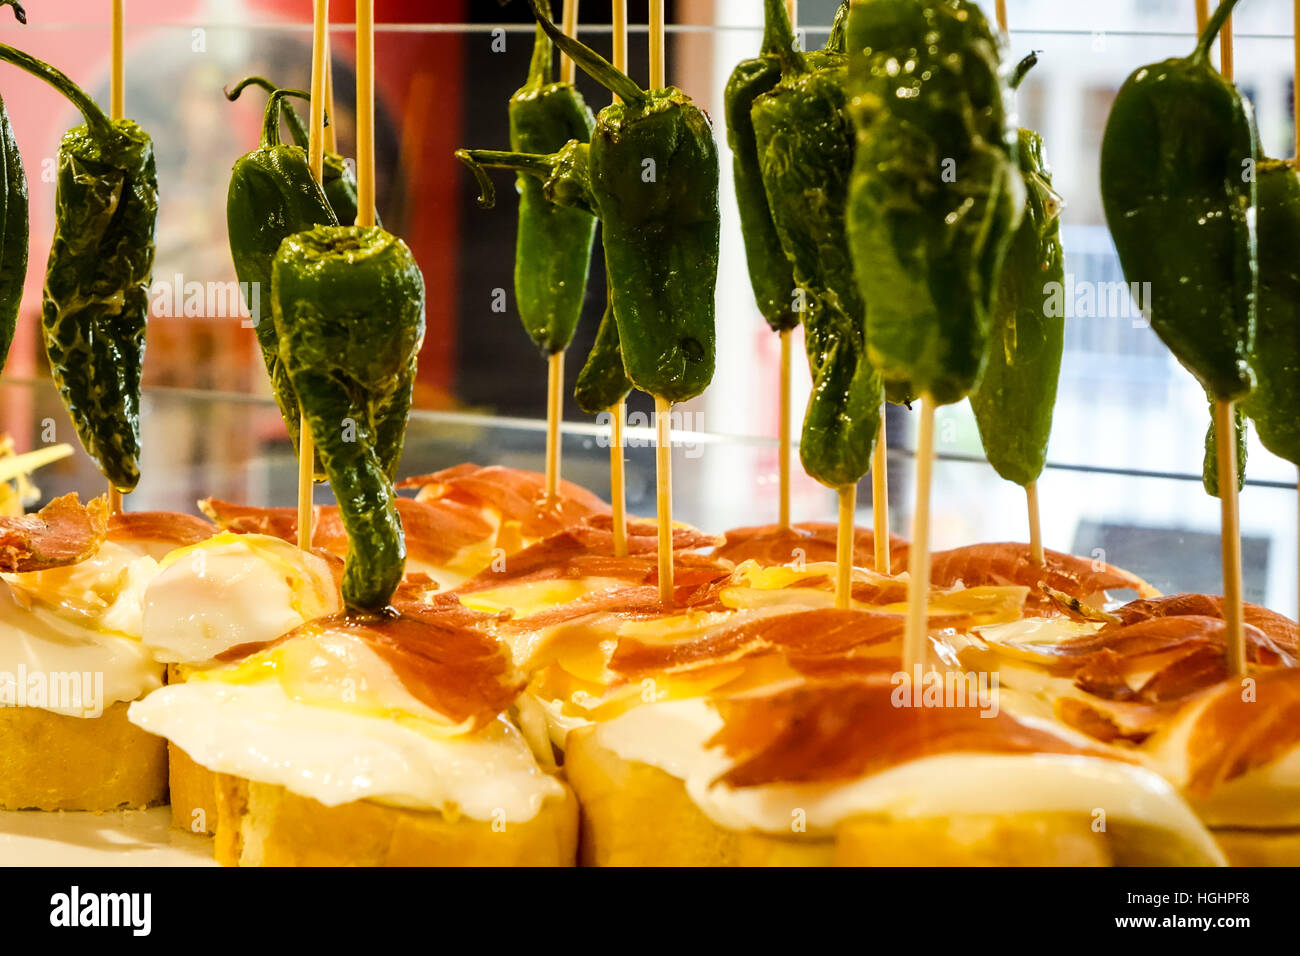 tapas-on-display-in-glass-cases-on-spanish-bar-HGHPF8.jpg